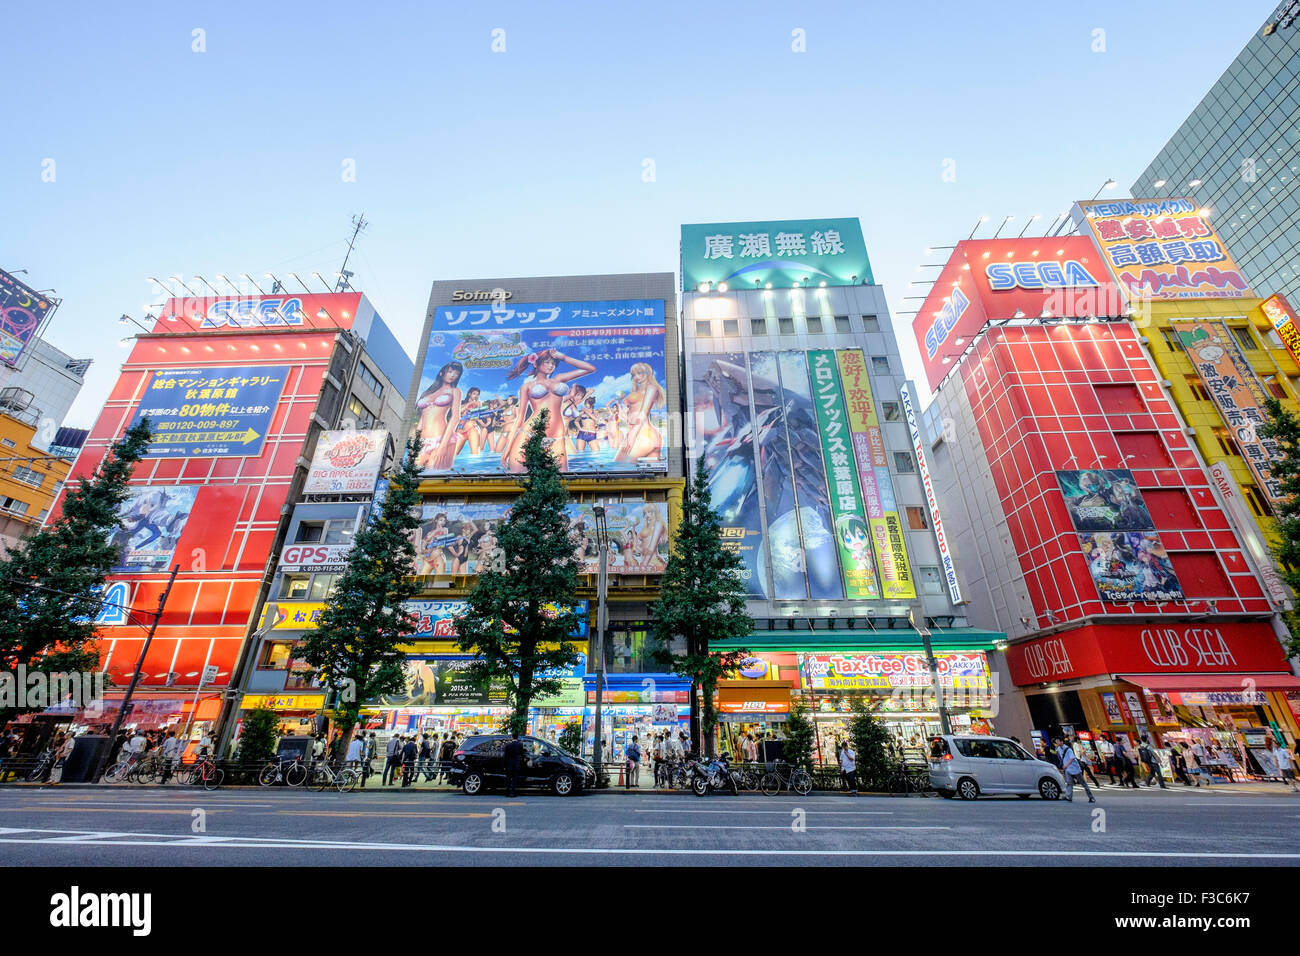 Billboards in Akihabara known as Electric Town or Geek Town selling Manga based games and videos in Tokyo Japan - Stock Image